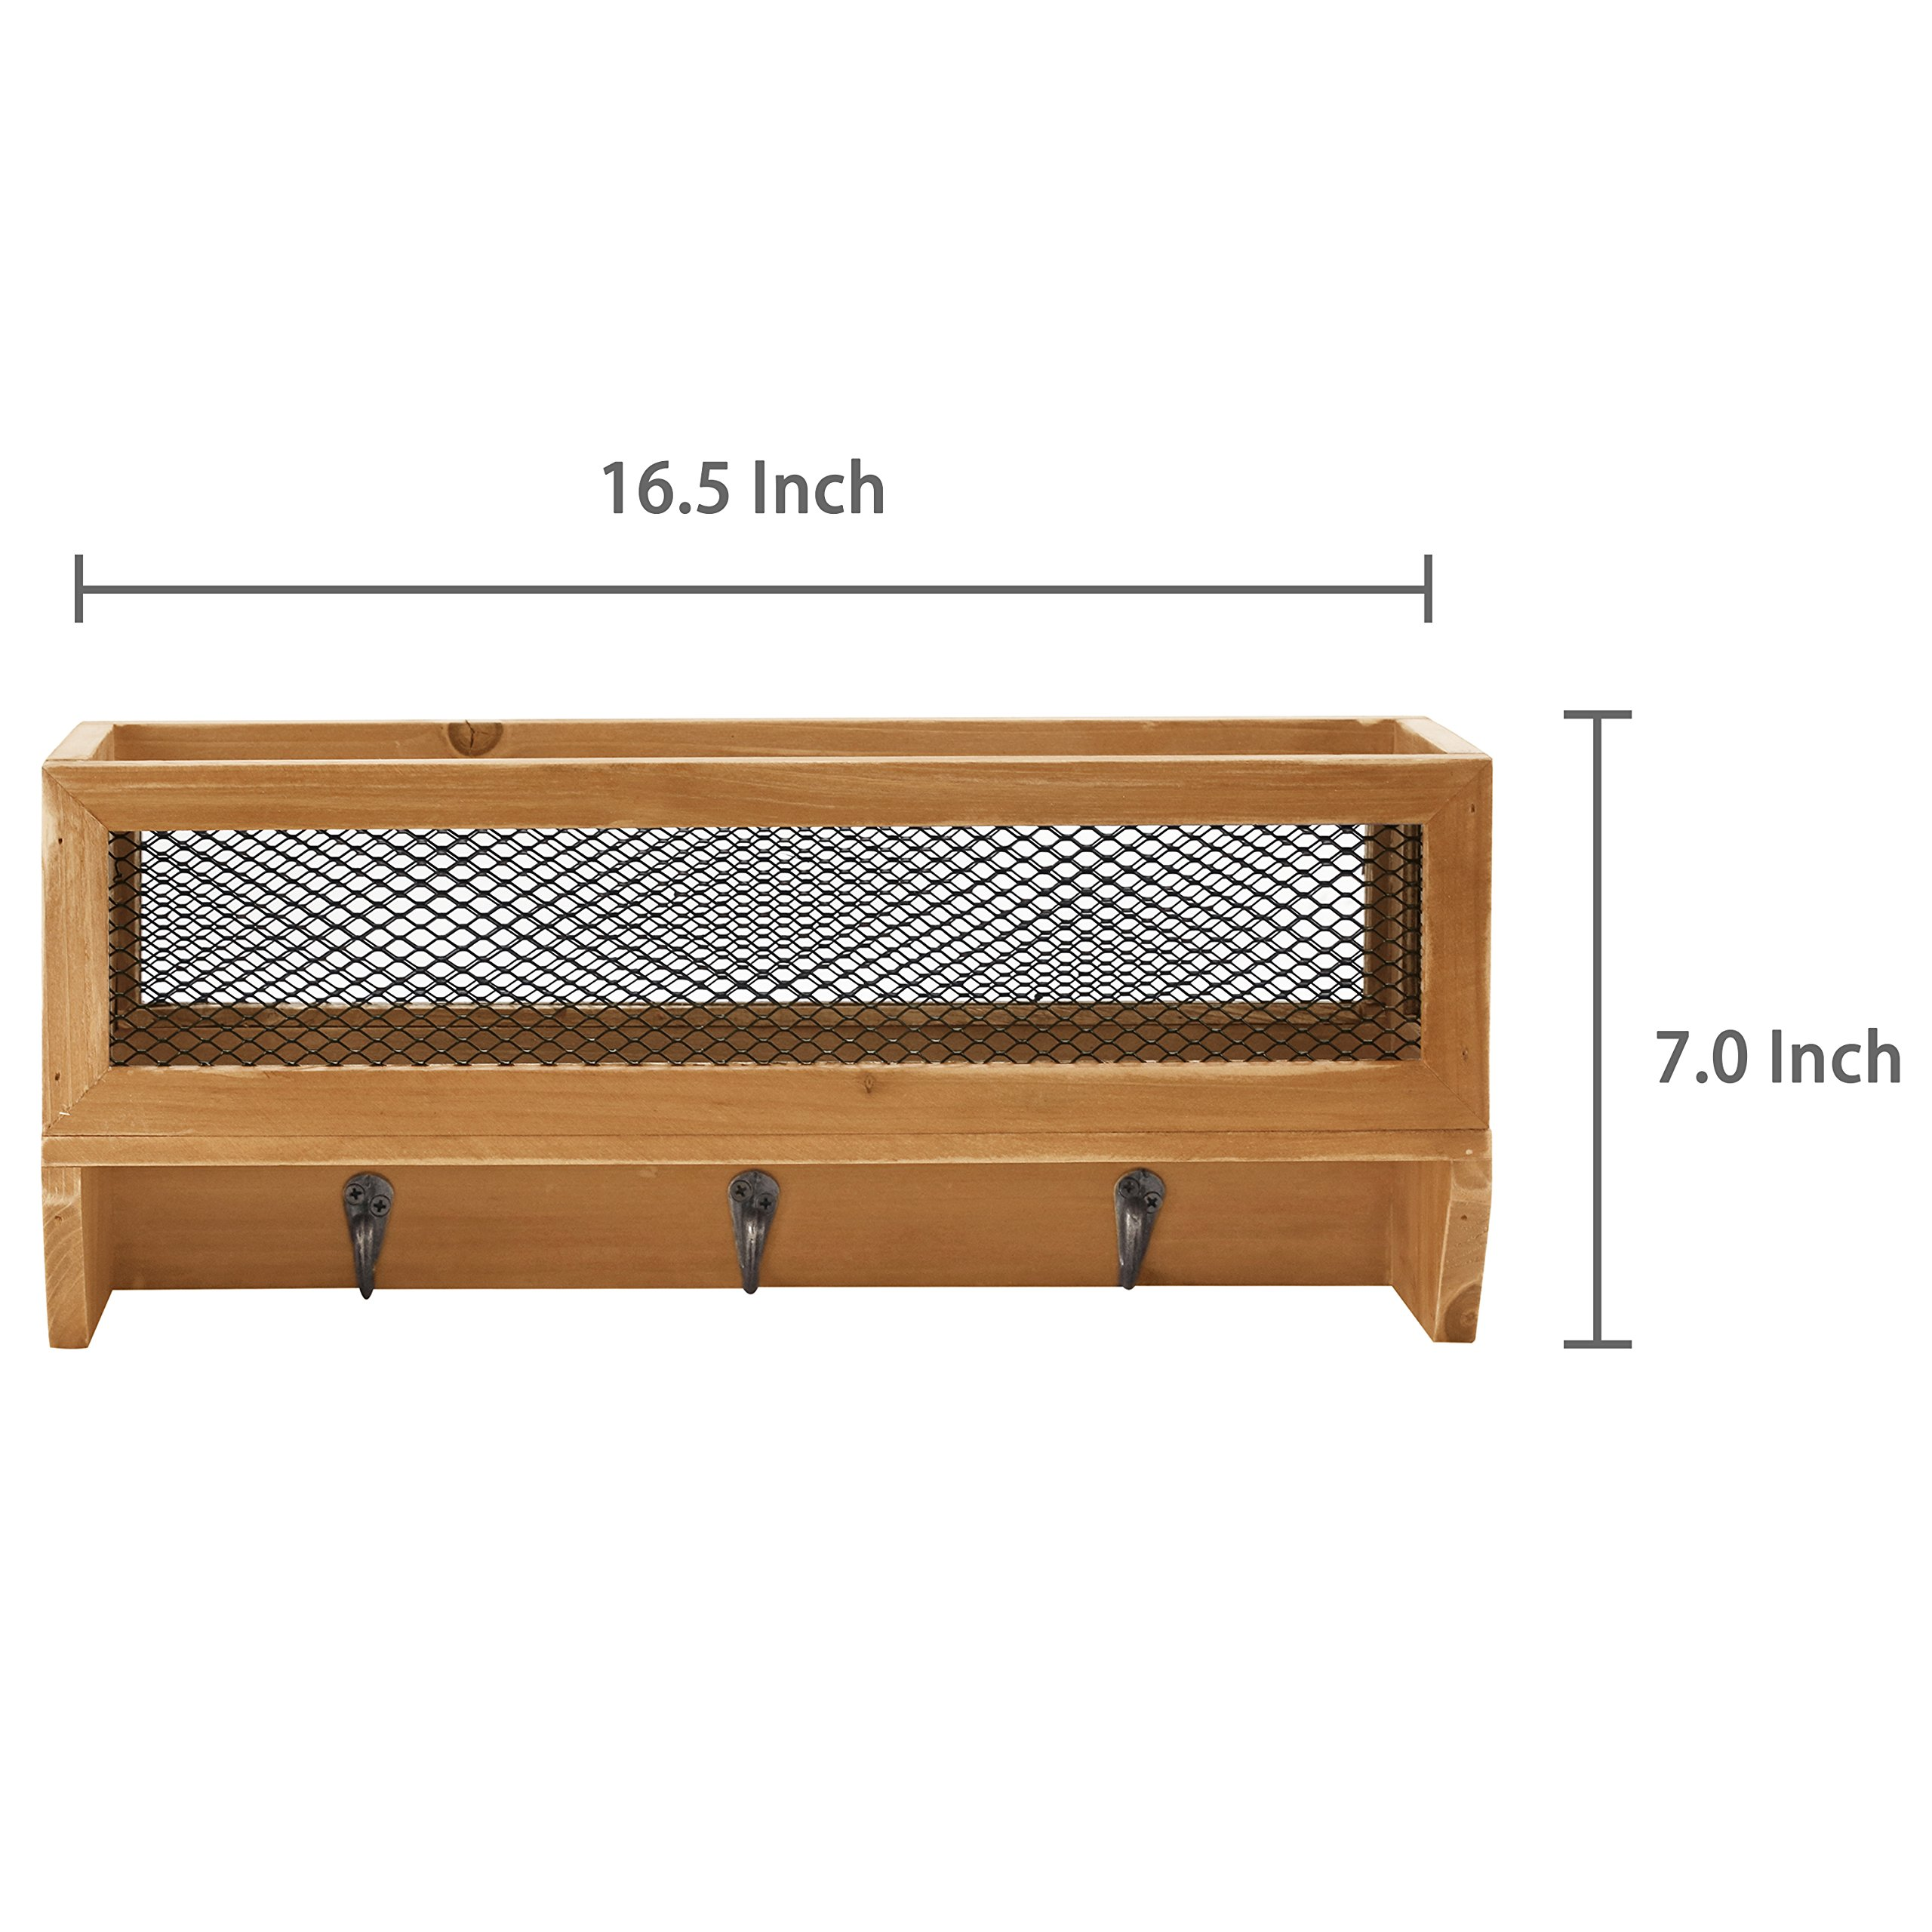 3-Hook Rustic Wooden Wall Mounted Entryway Organizer Rack with Metal Mesh Storage Basket by MyGift (Image #5)